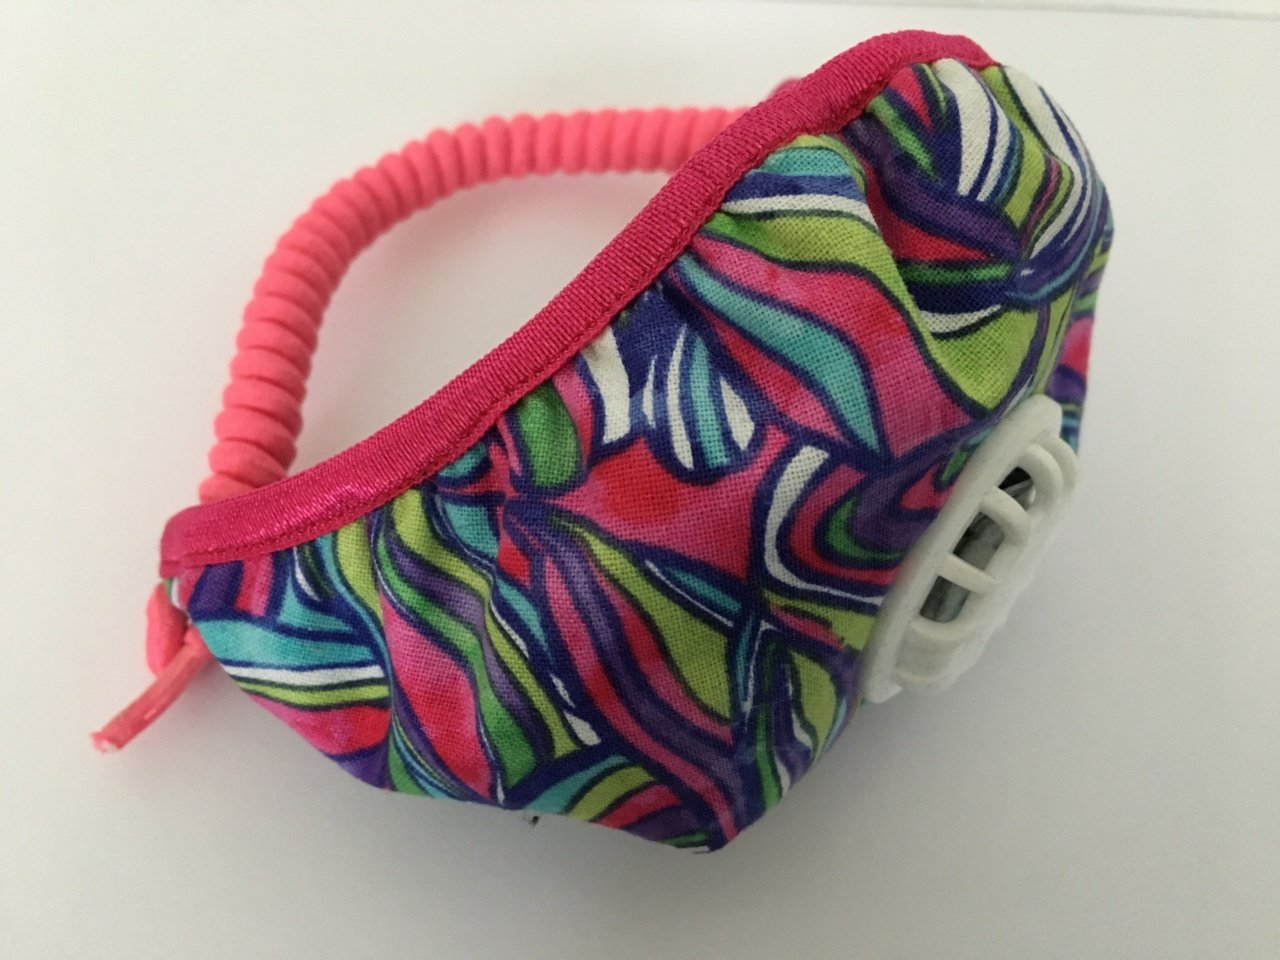 Curly coil back. Adjustable. Comfy. No ear loops on any Posh Pollution Mask.